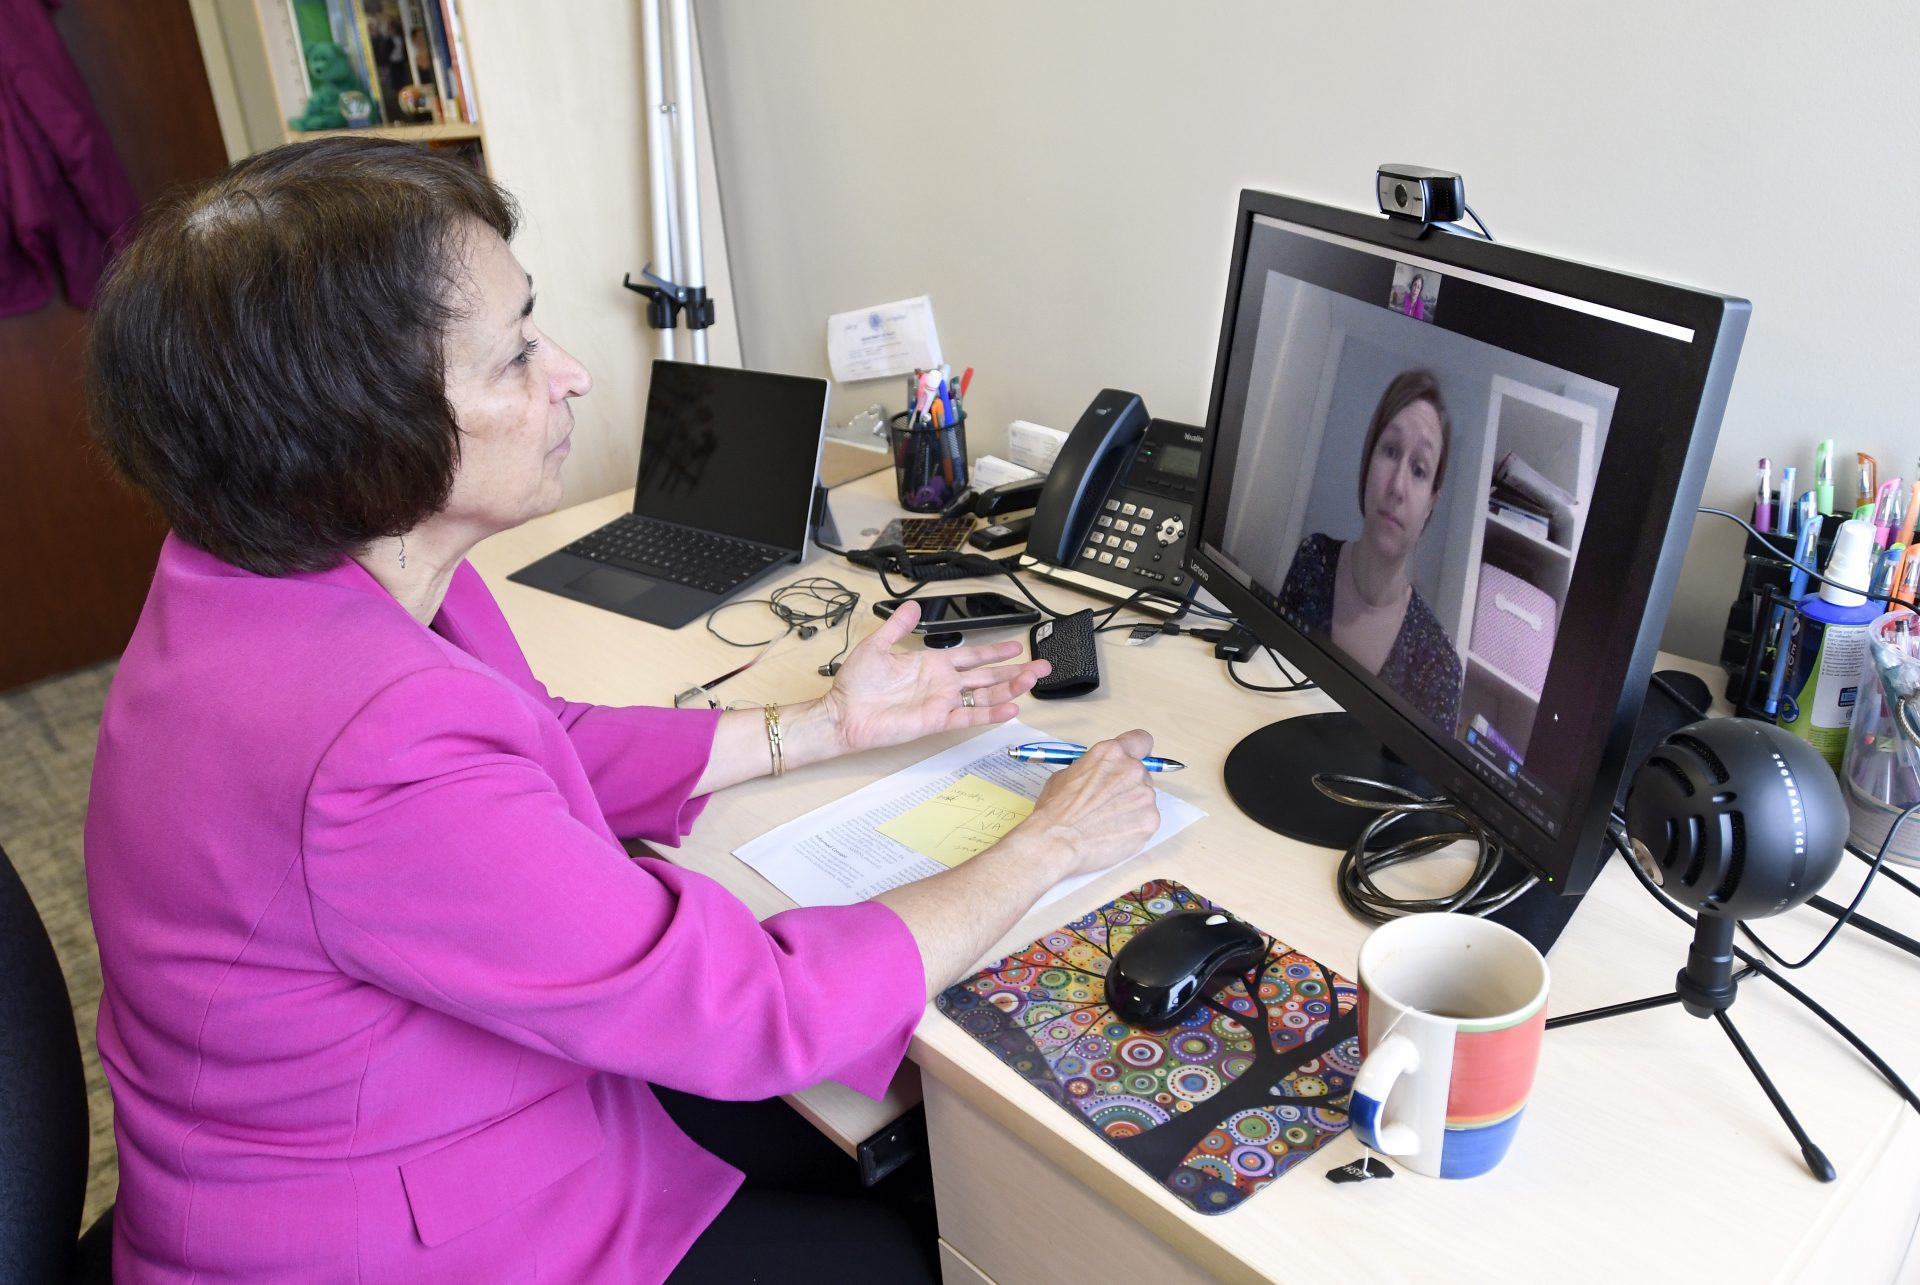 Psychologist Mary Alvord, left, holds a video conference with her colleague, psychologist Veronica Raggi, whom she had scheduled to meet in person, in Chevy Chase, Md., Wednesday, March 18, 2020. For people with anxiety disorders, the coronavirus outbreak presents a new set of worries to deal with, psychologists say.